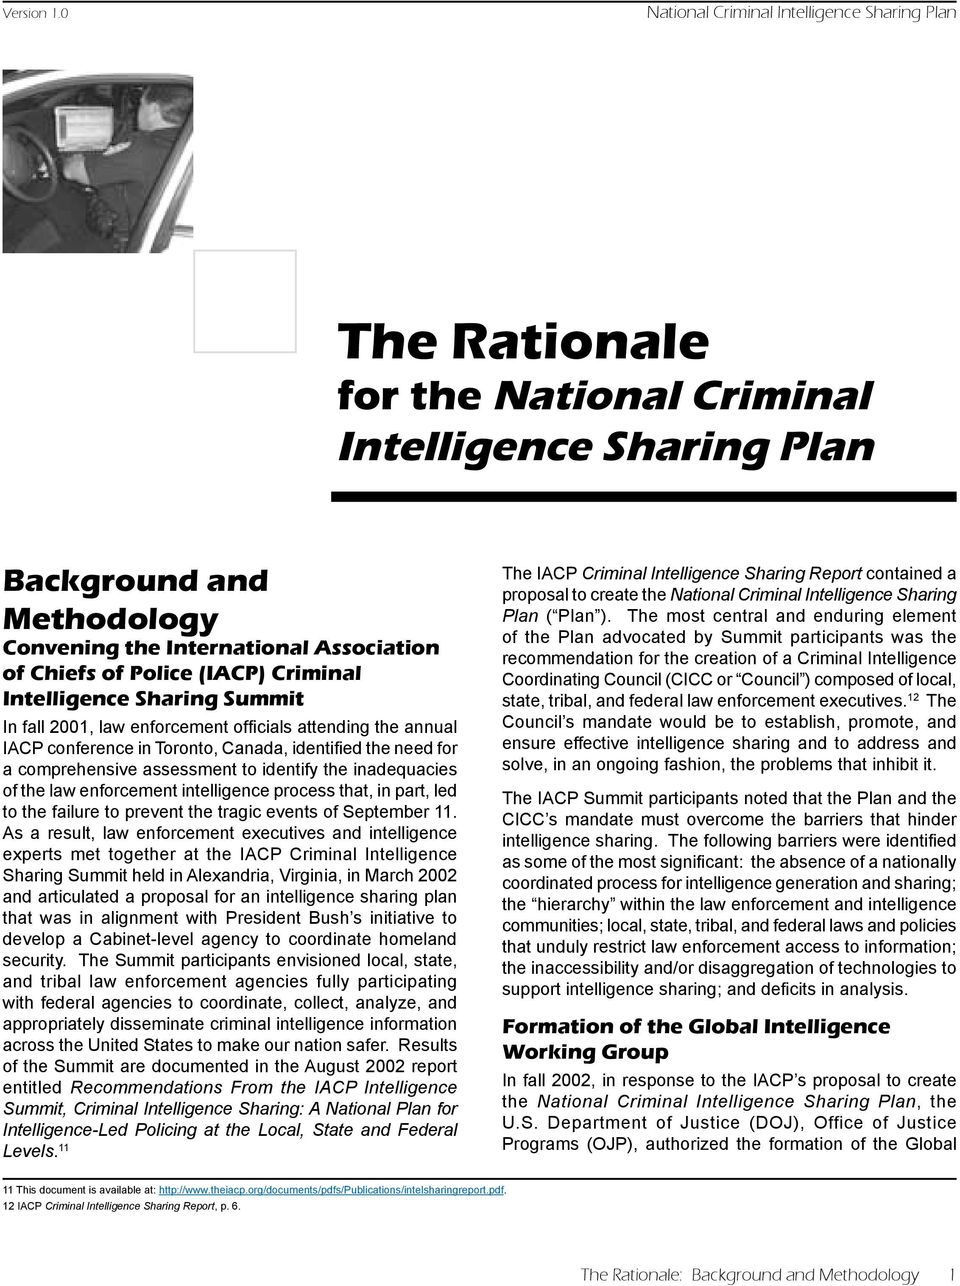 (IACP) Criminal Intelligence Sharing Summit In fall 2001, law enforcement officials attending the annual IACP conference in Toronto, Canada, identified the need for a comprehensive assessment to